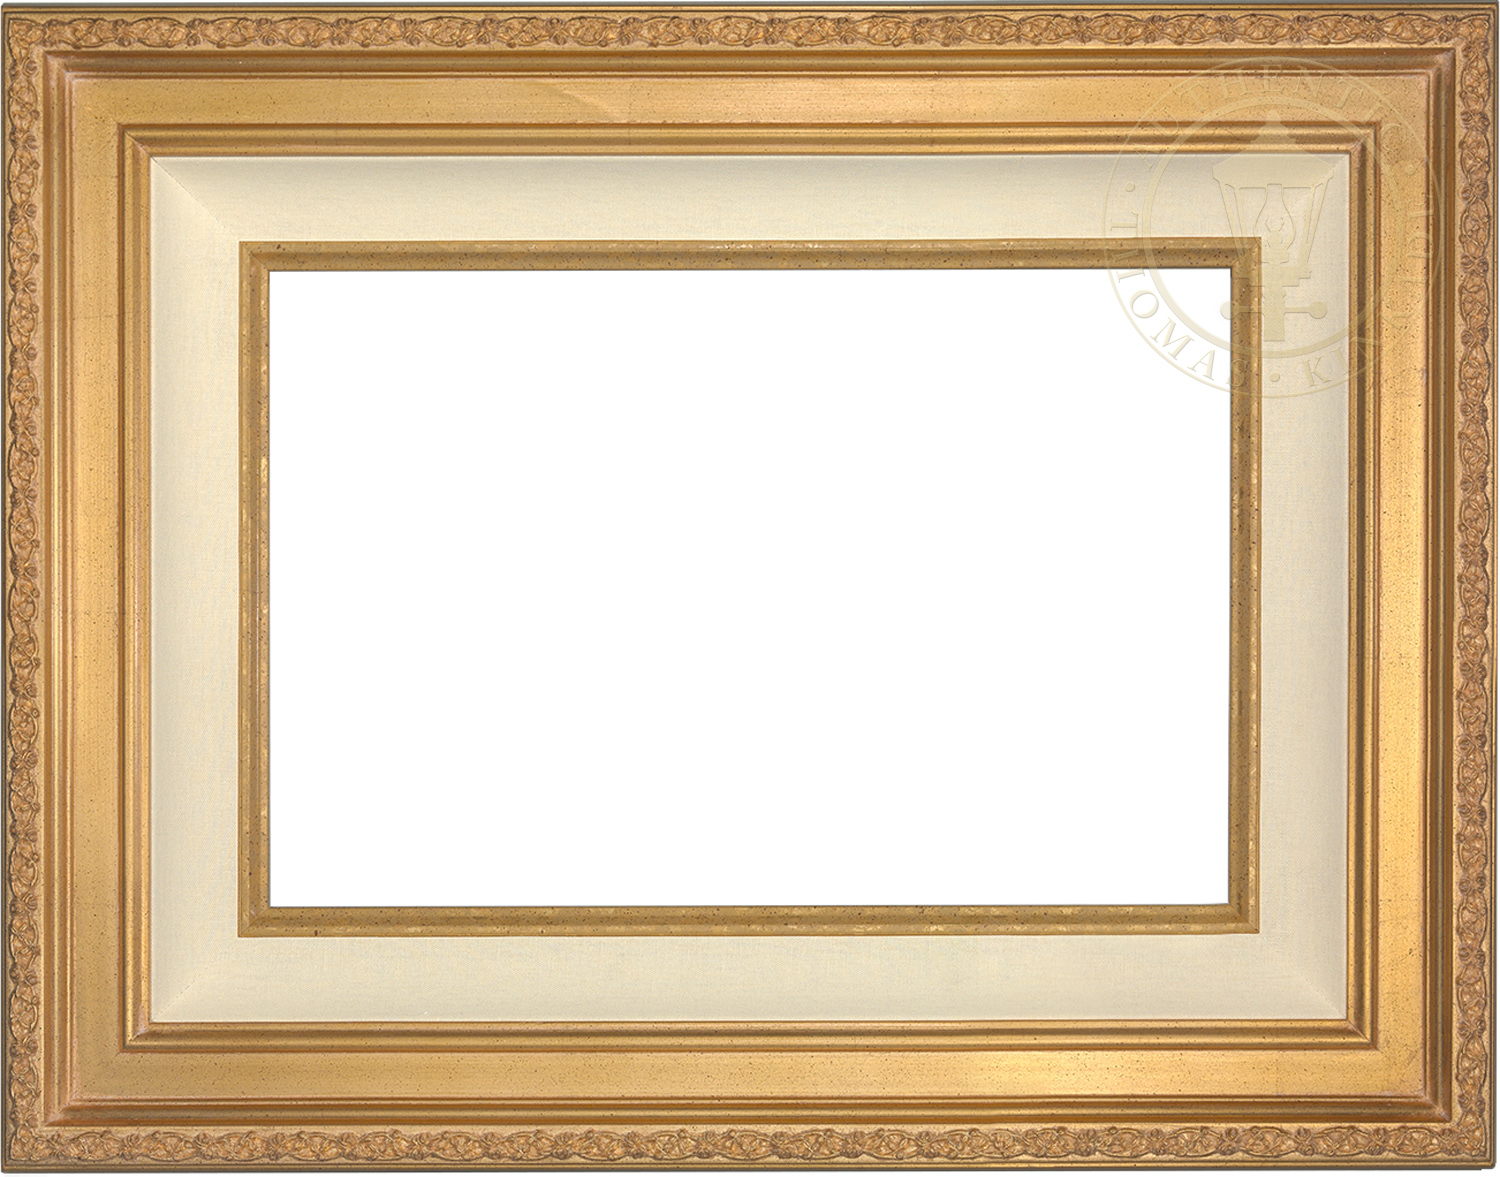 Antique Gold – Limited Edition Canvas Frame | The Thomas Kinkade Company